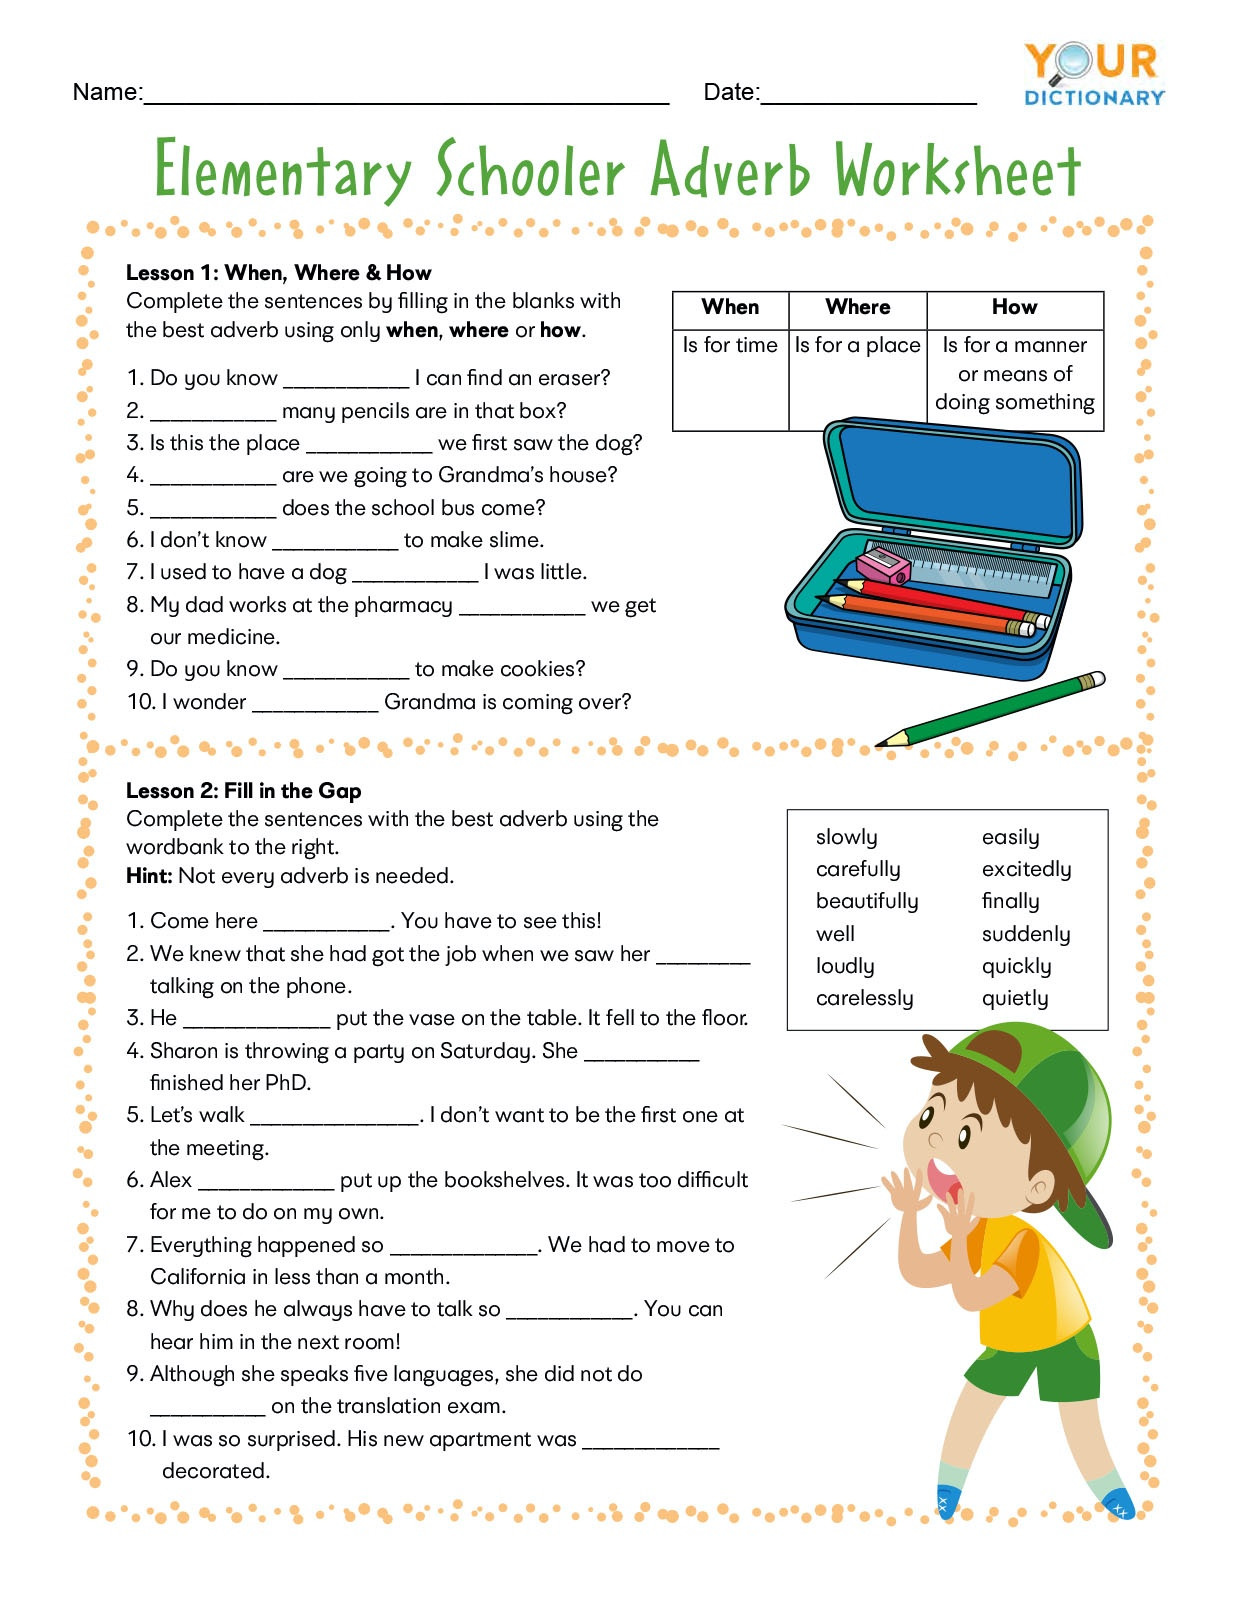 Grammar Worksheets for Grade 5 Adverb Worksheets for Elementary and Middle School